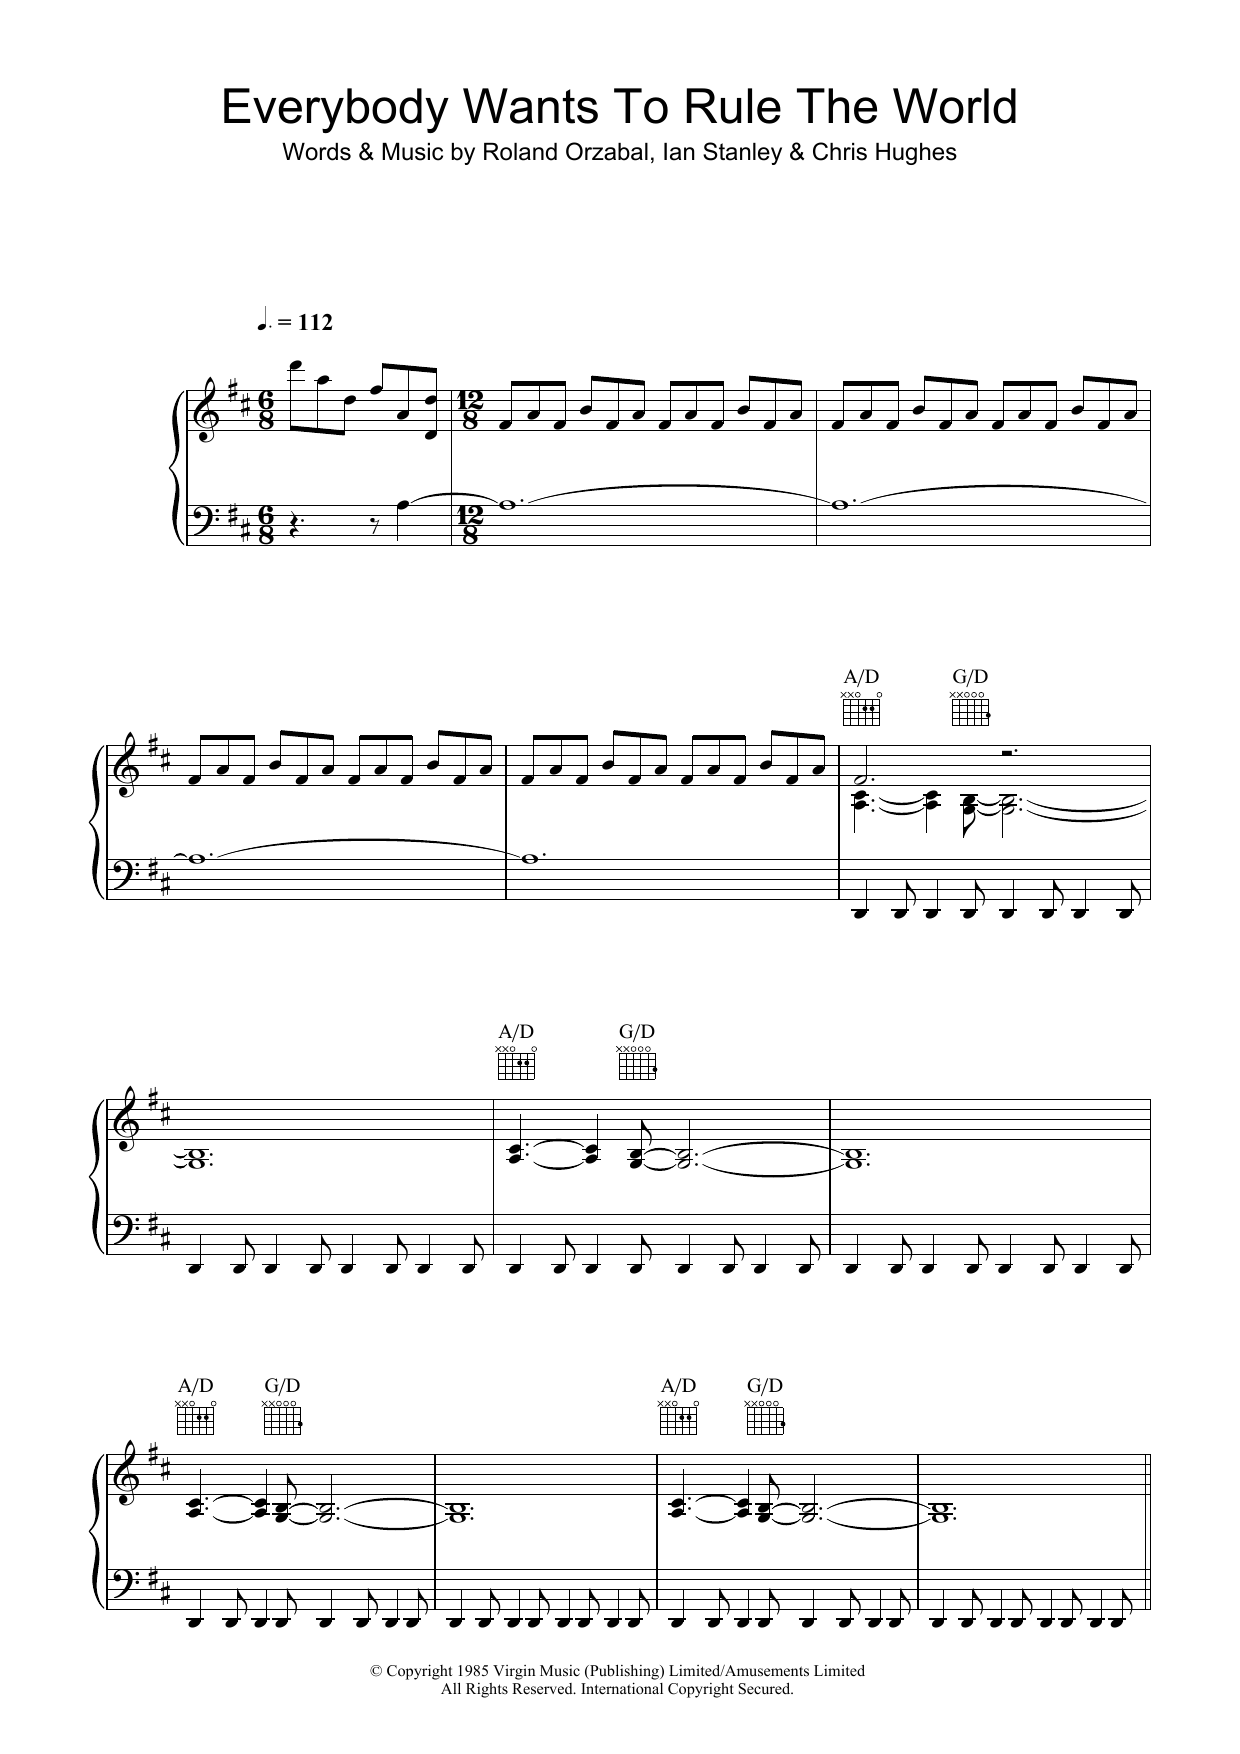 Everybody Wants To Rule The World sheet music for voice, piano or guitar by Roland Orzabal